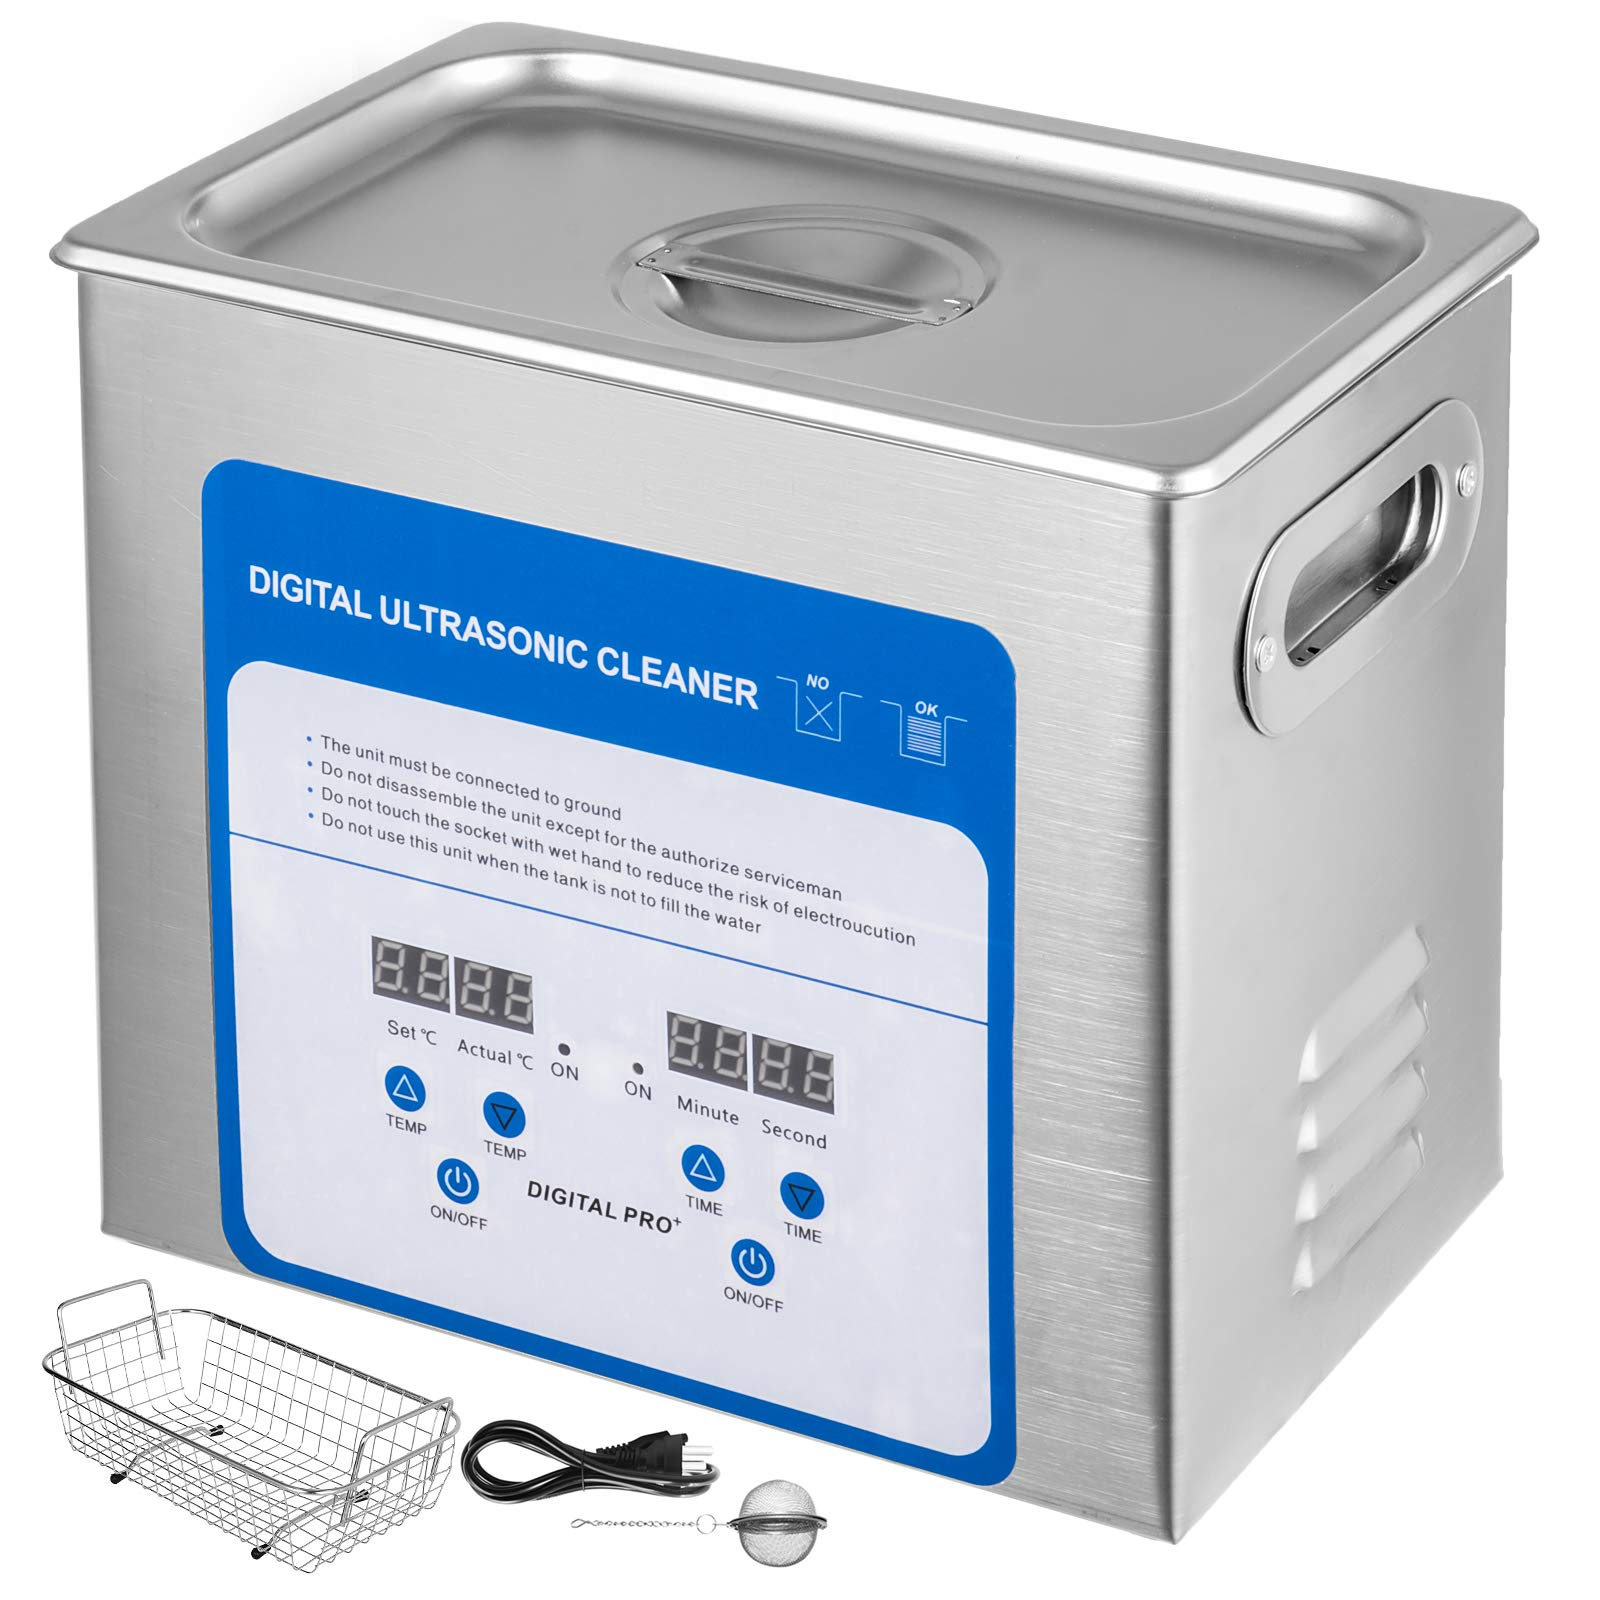 Mophorn 3.2L Professional Ultrasonic Cleaner 320W 304 and 316 StainlessSteel Digital Lab Ultrasonic Cleaner with Heater Timer for Jewelry Watch Glasses Circuit Board Dentures Small Parts by Mophorn